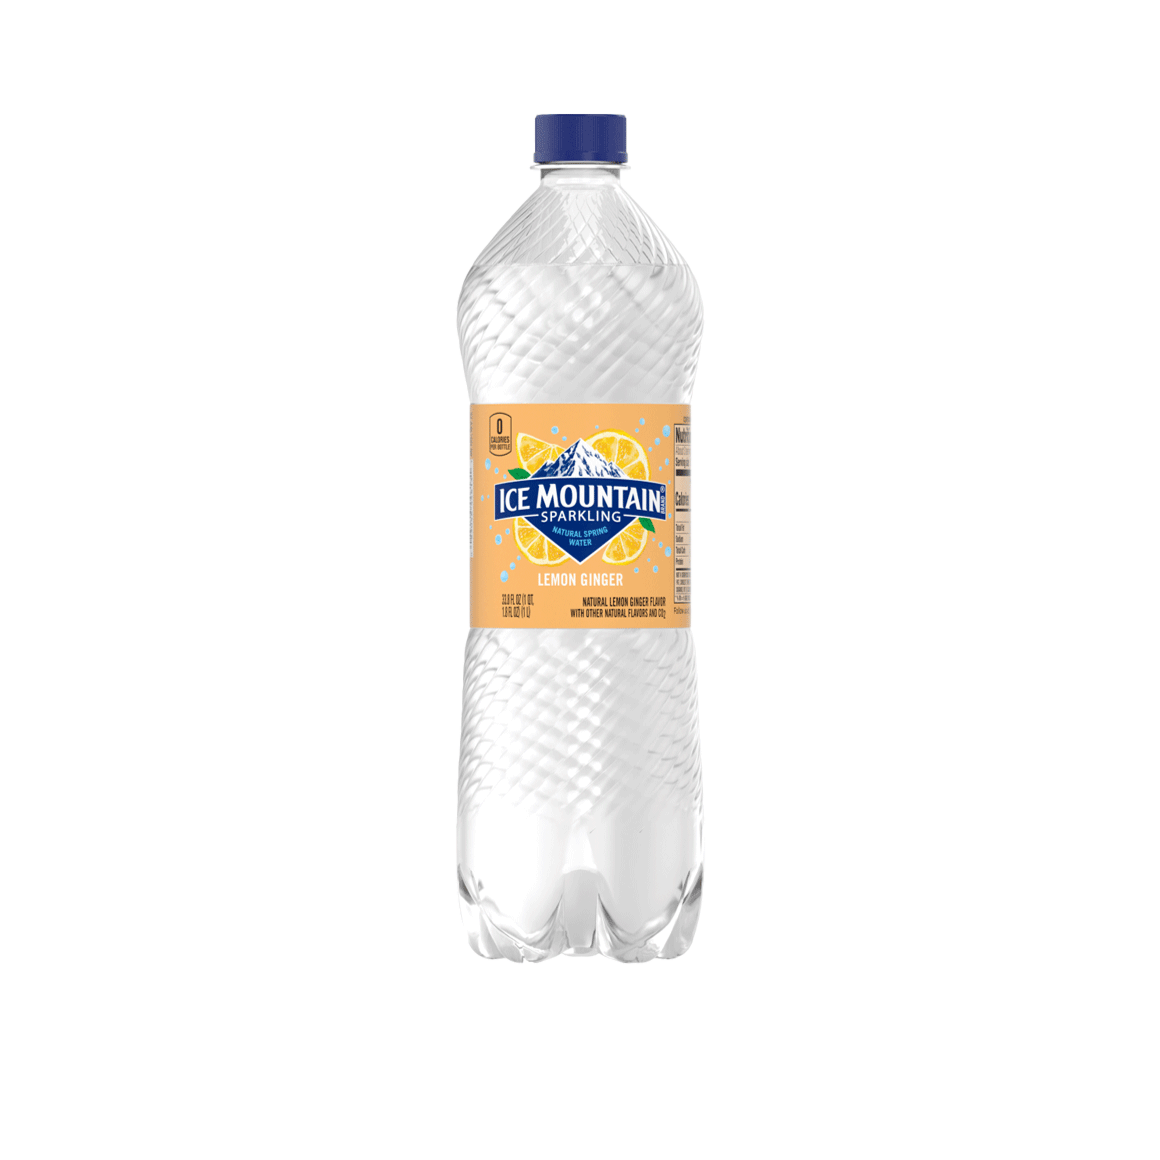 Ice Mountain® Brand Sparkling 100% Natural Spring Water - Lemon Ginger Image2